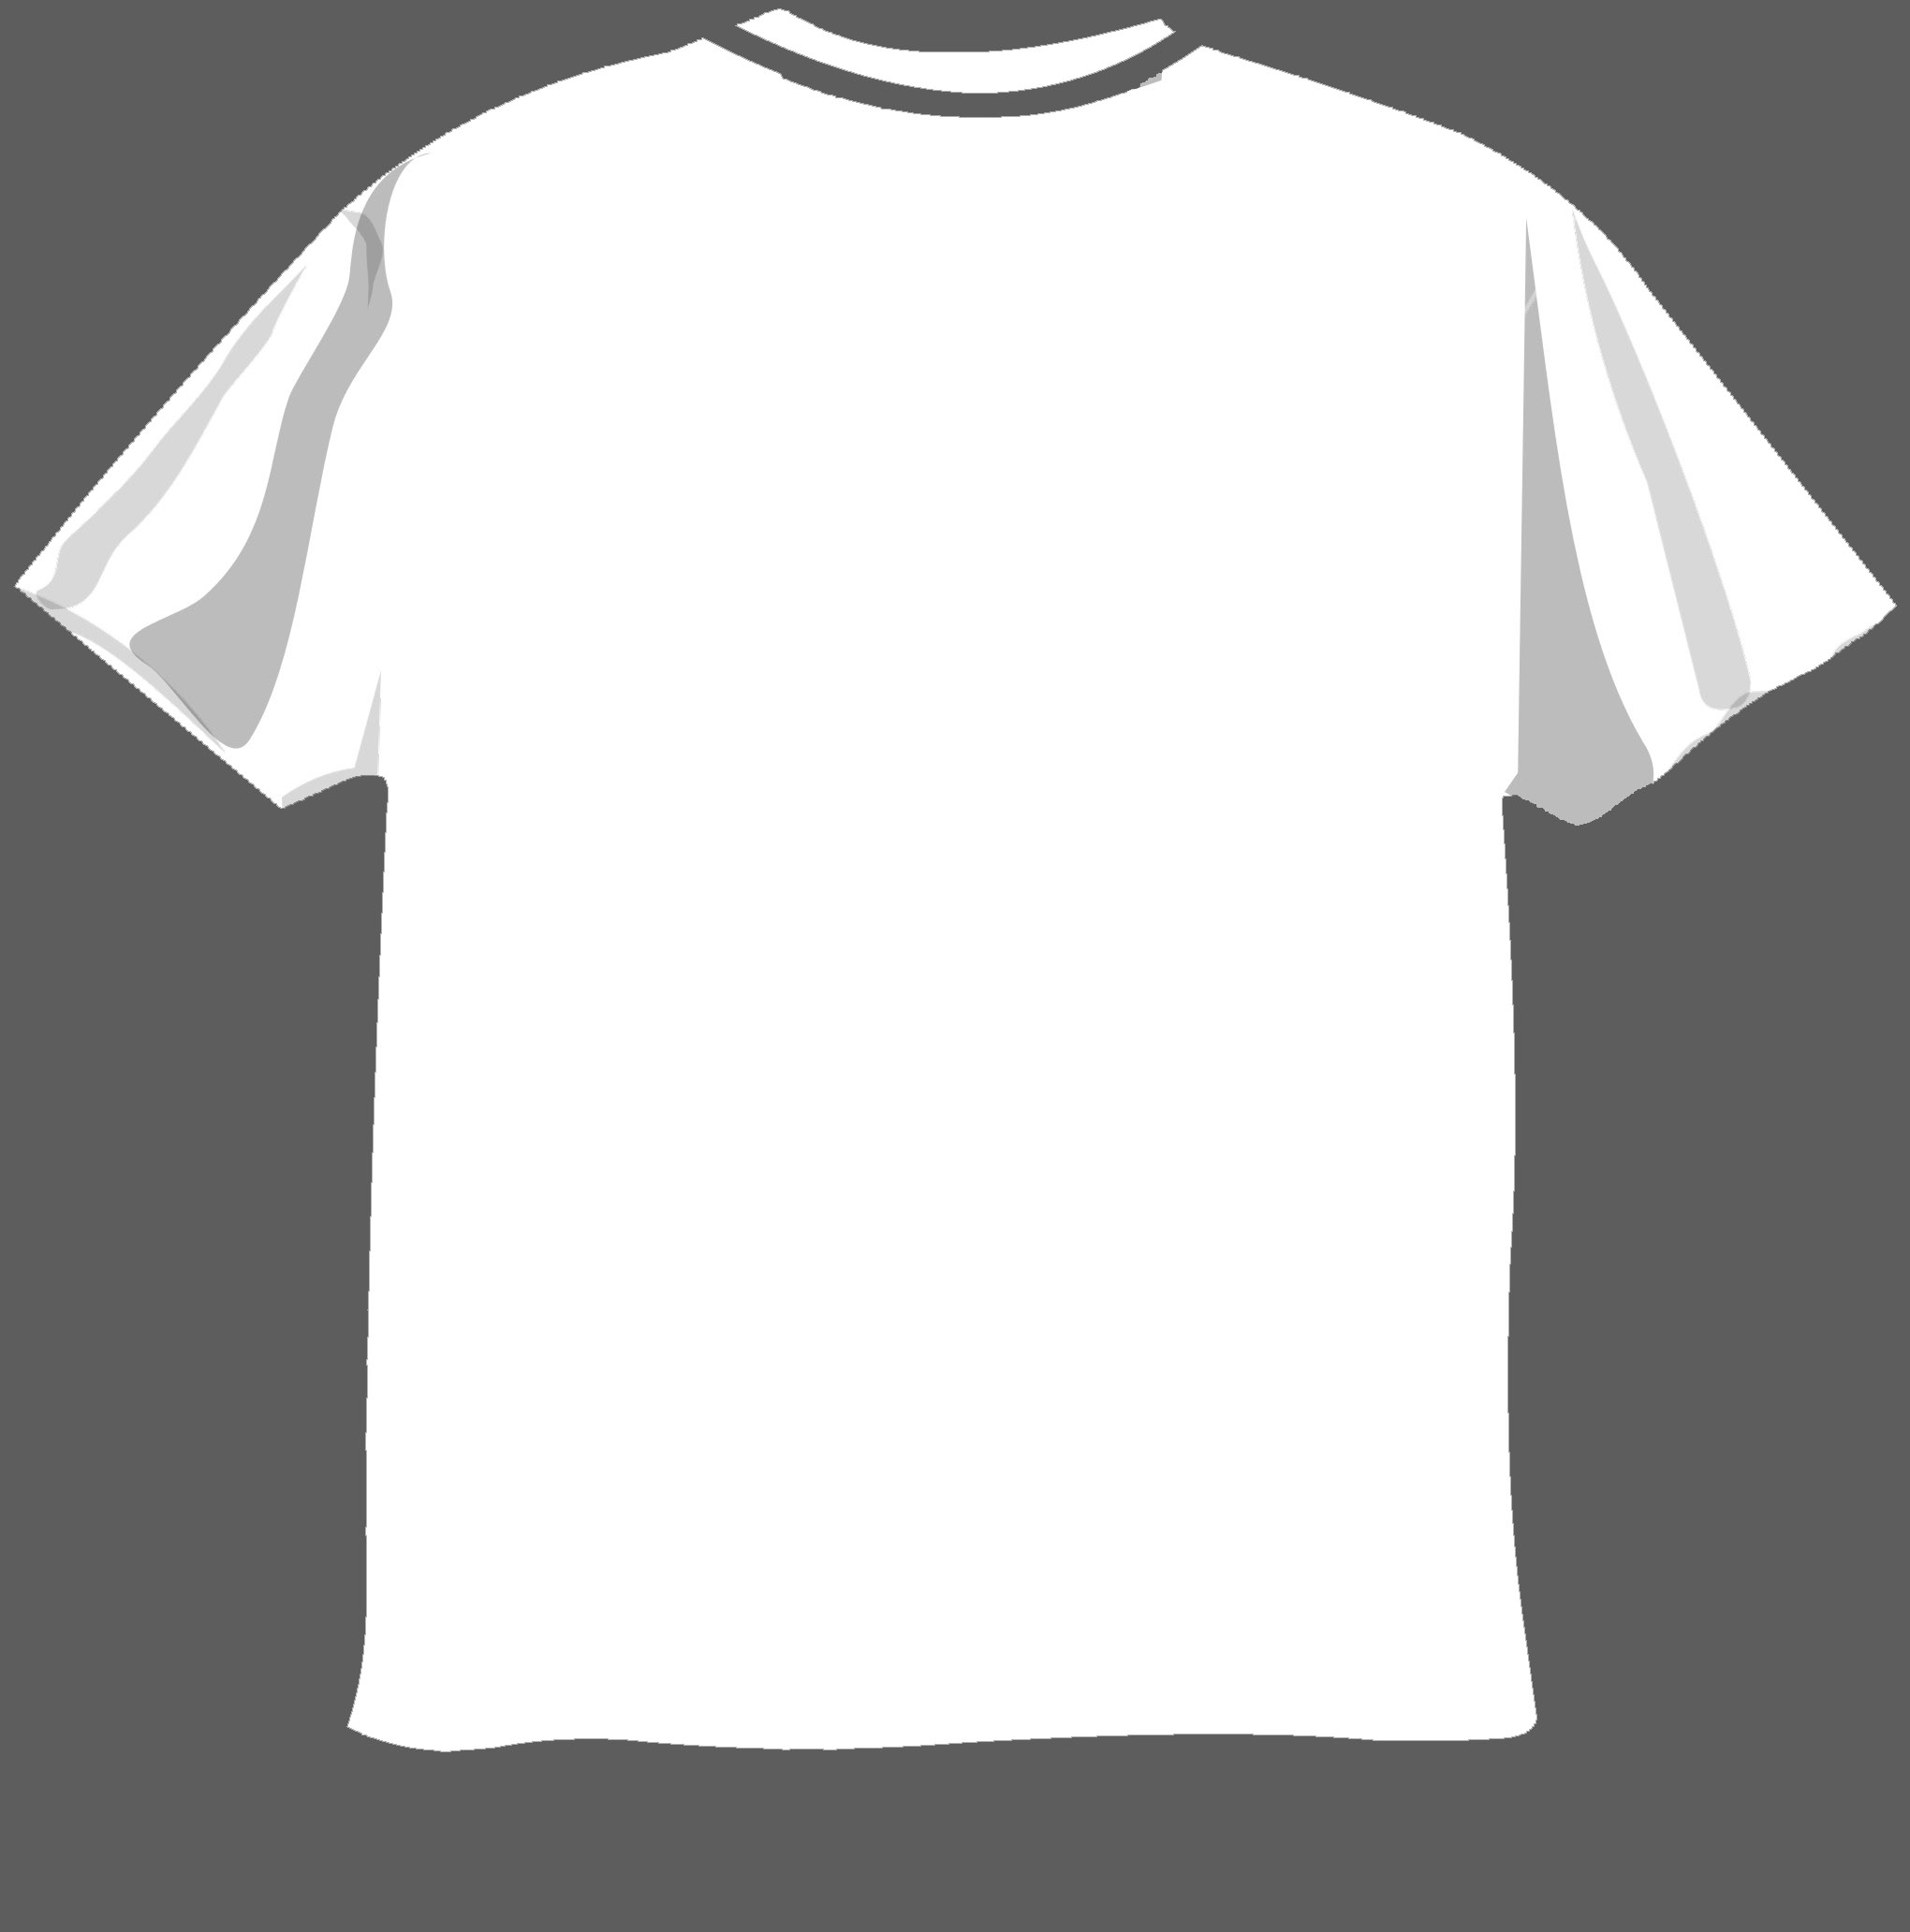 16 blank t shirt template photoshop images blank t shirt for Blank t shirt design template